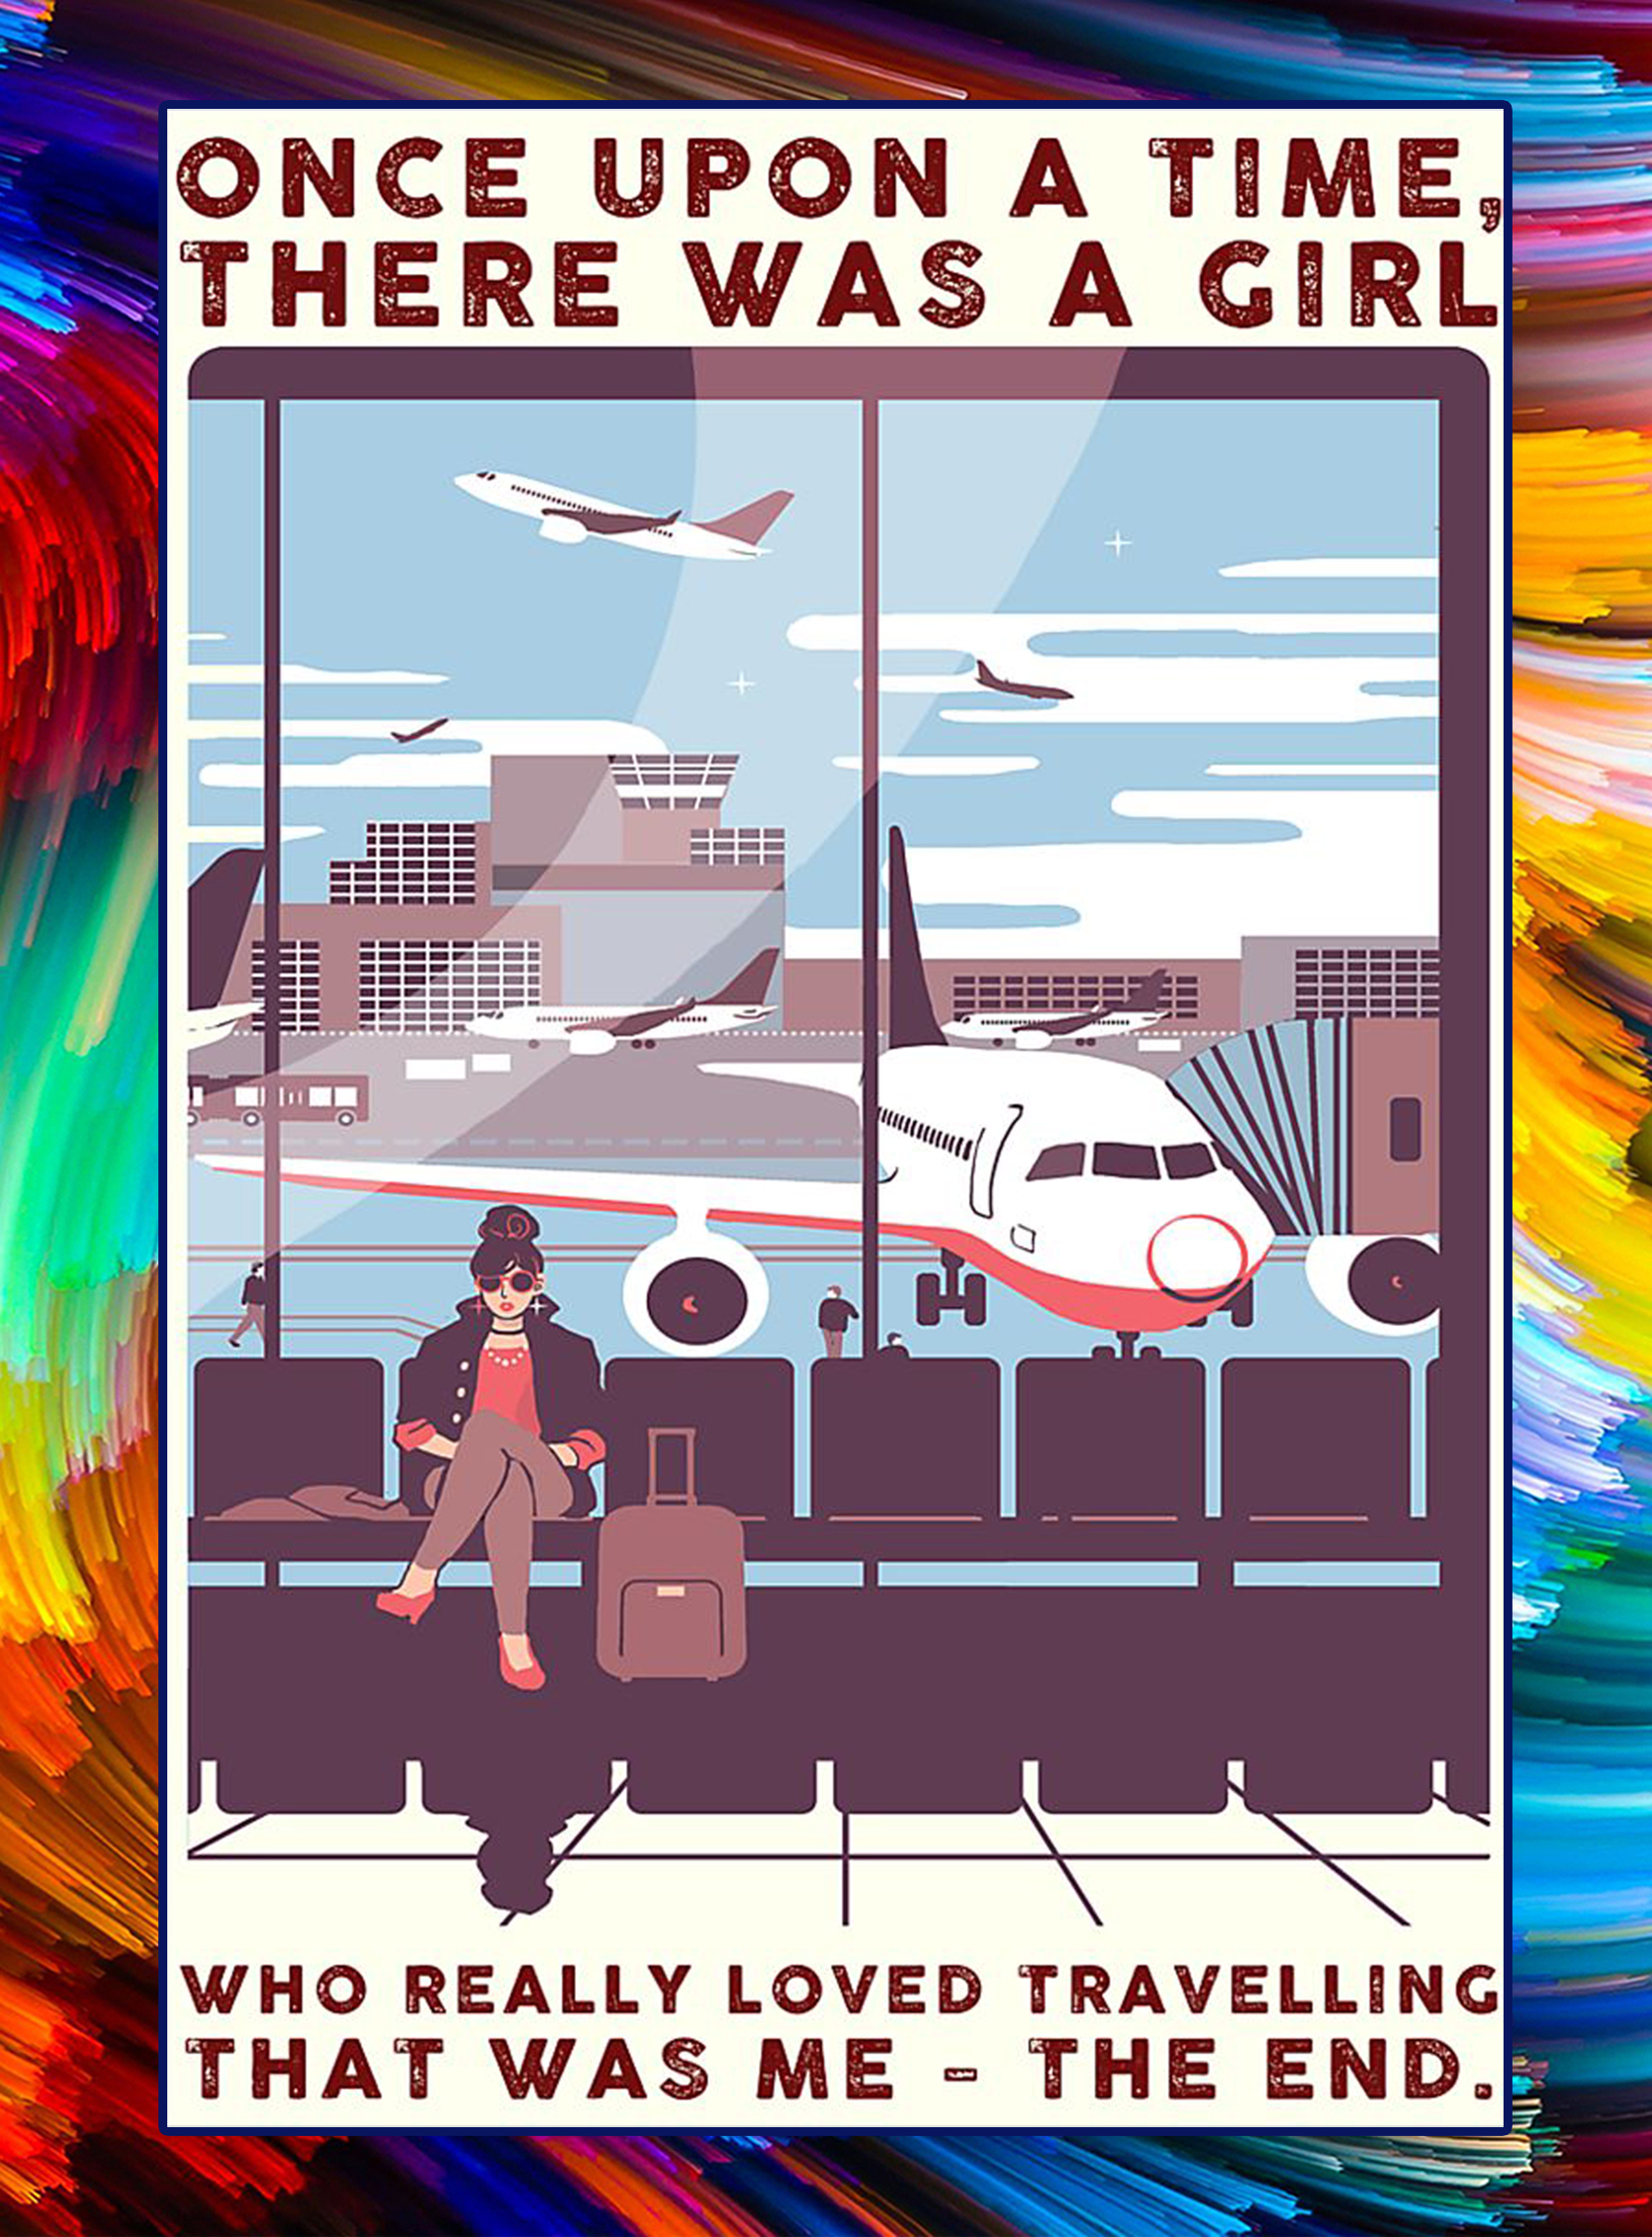 Once upon a time there was a girl who really loved travelling poster - A2